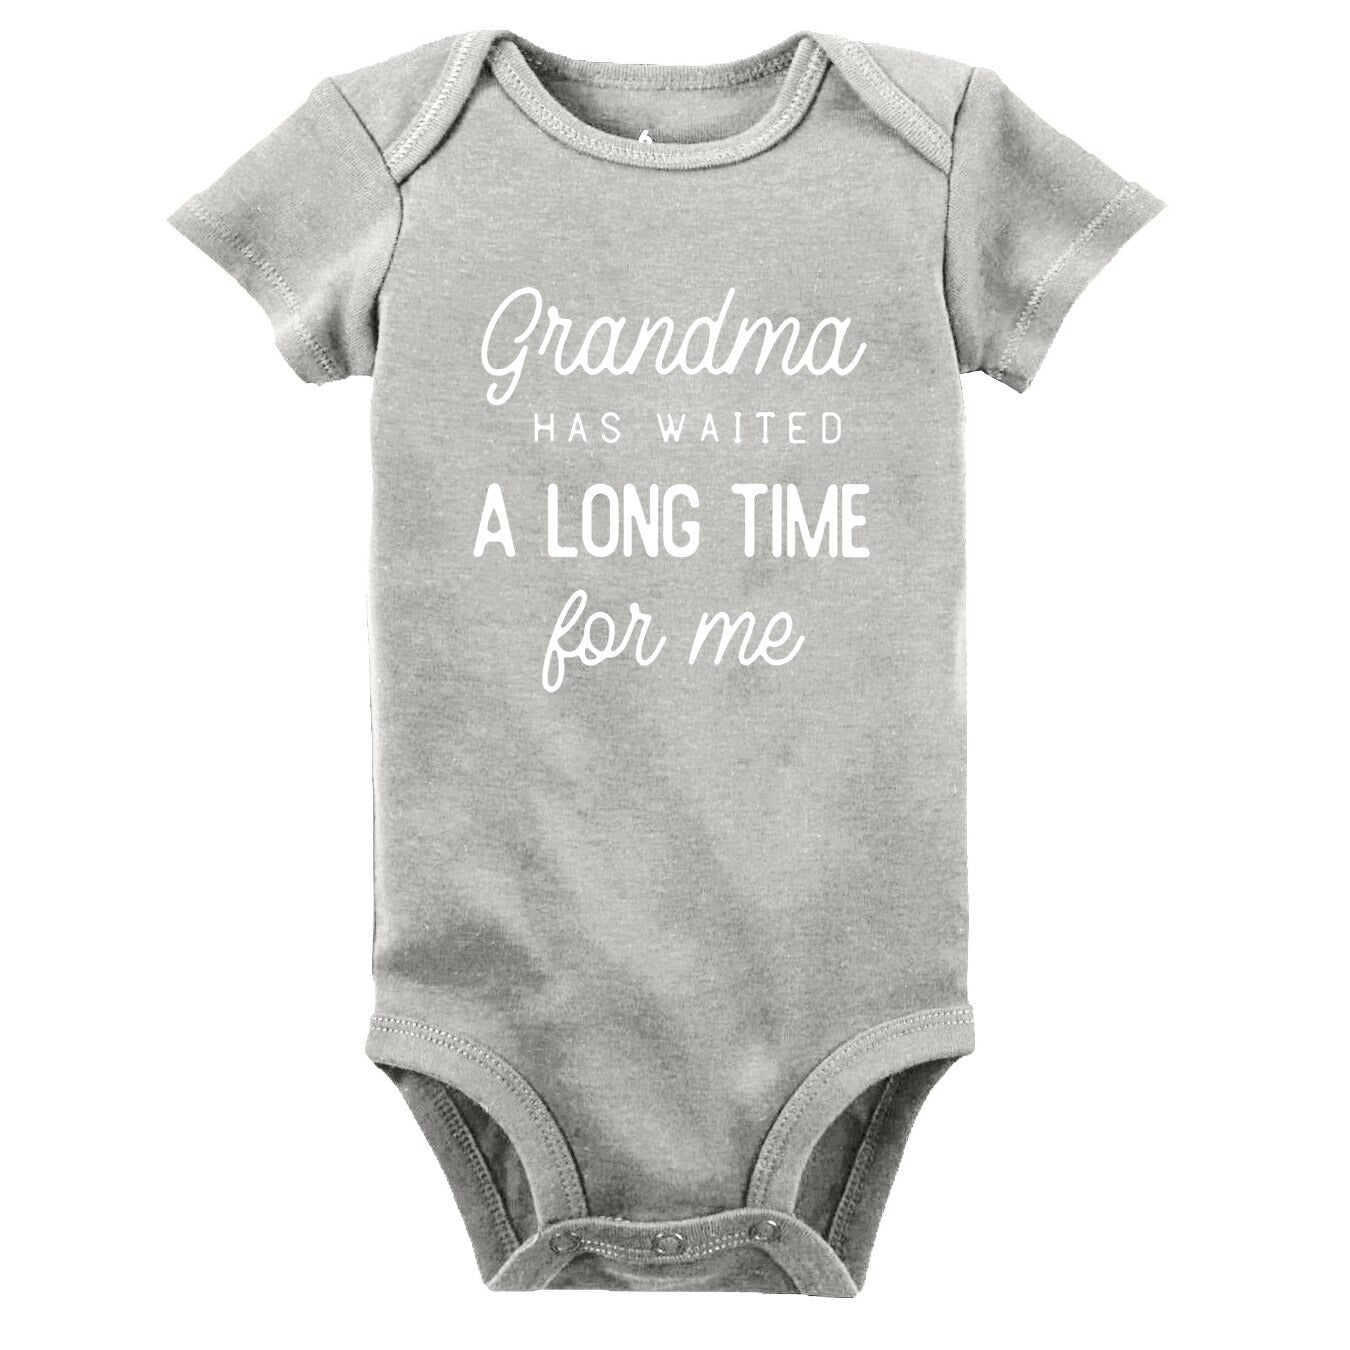 ong-time-letter-printing-new-born-baby-c_description-7